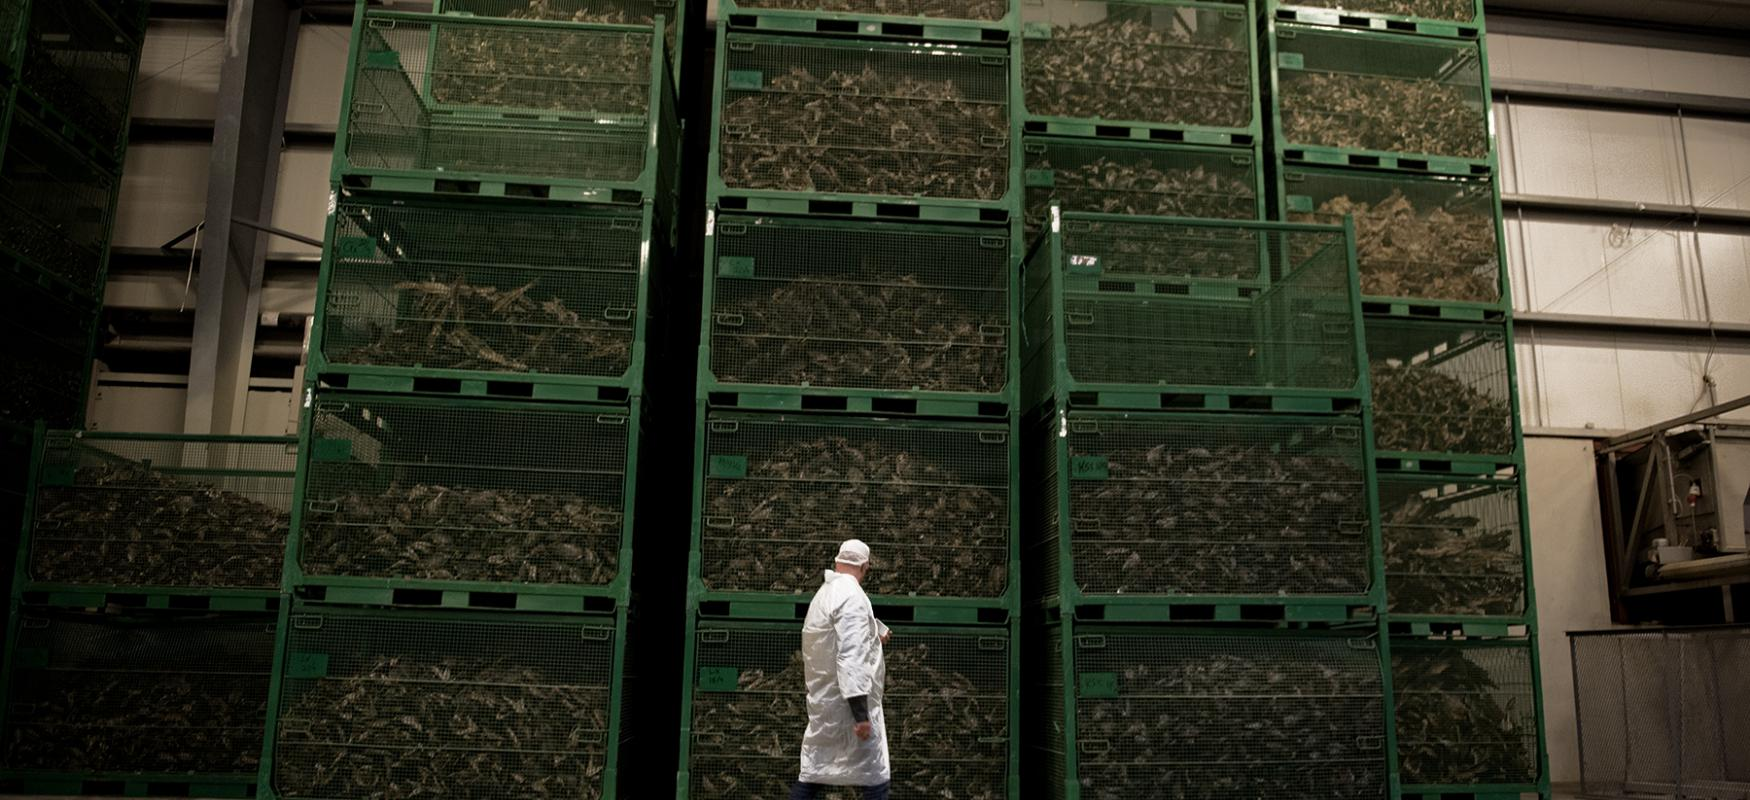 Man walking in a warehouse, with boxes of dried fish in the background.